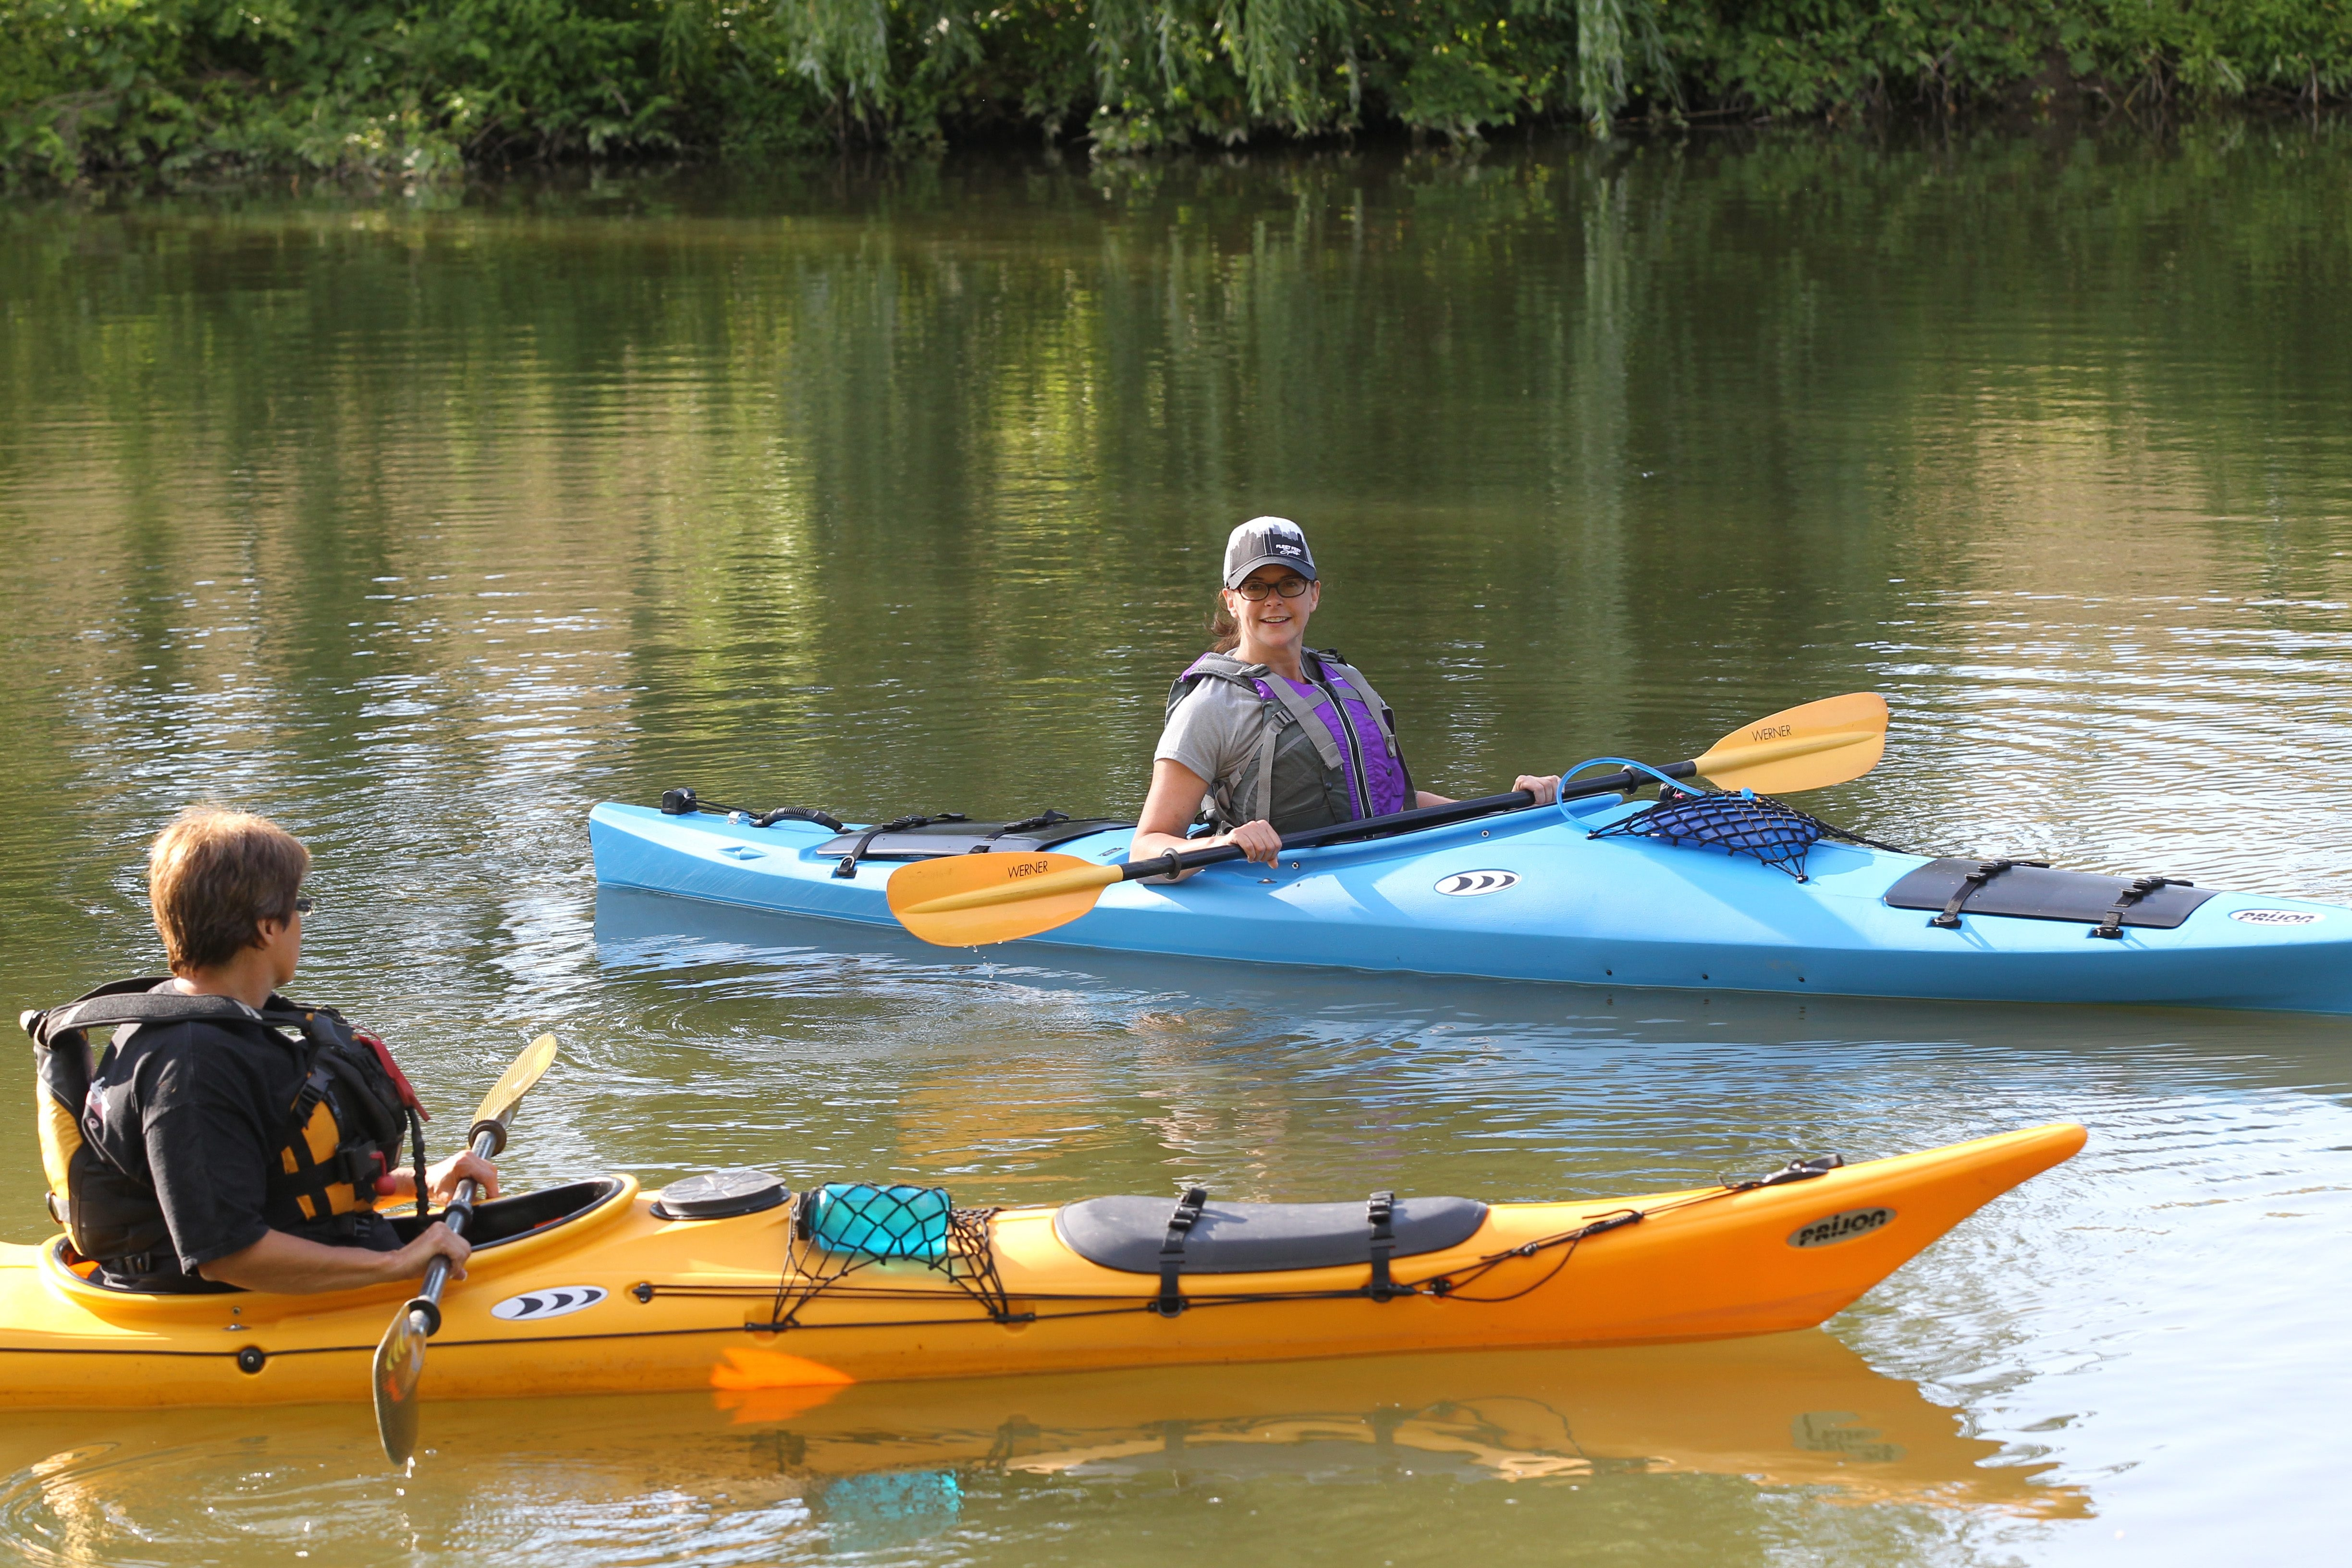 """Sandy York enjoys kayaking on Ellicott Creek in the Town of Tonawanda. """"As soon as I get in the water and push off the shore, I feel the stress melt away,"""" she says of kayaking on the peaceful waterway. (James P. McCoy/Buffalo News)"""